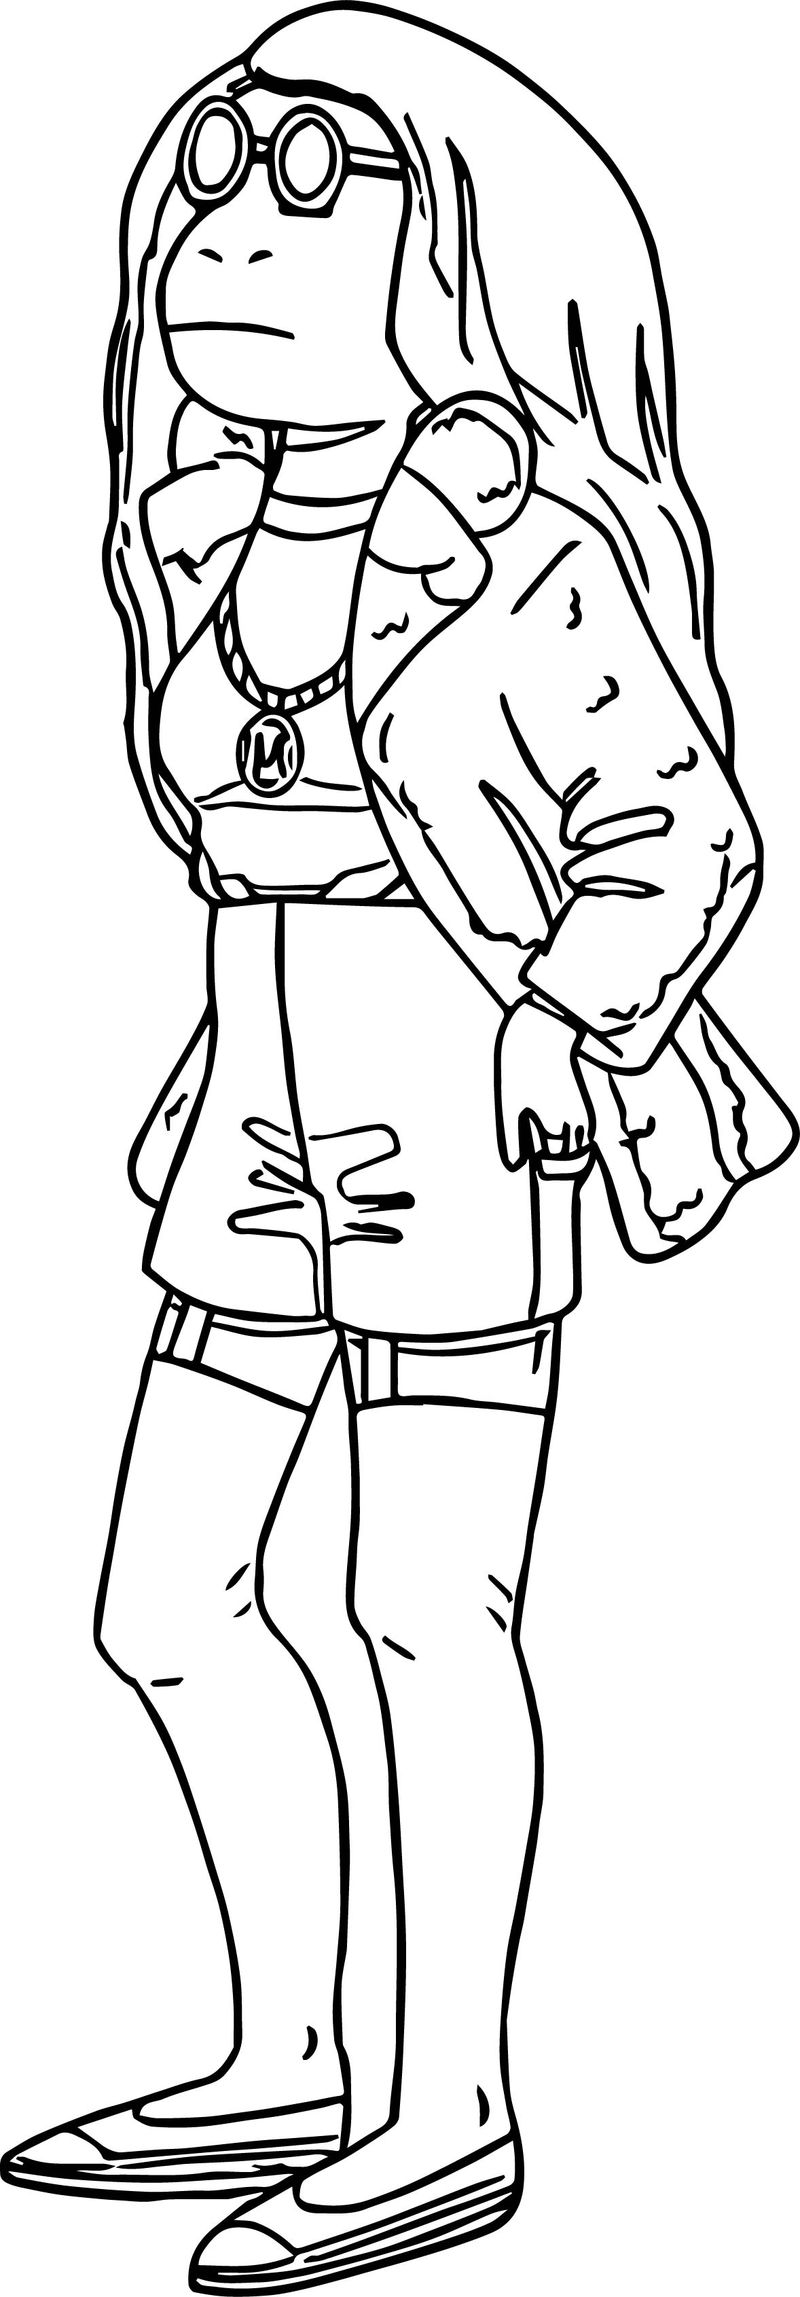 Big Arthur Girlfriend Coloring Page